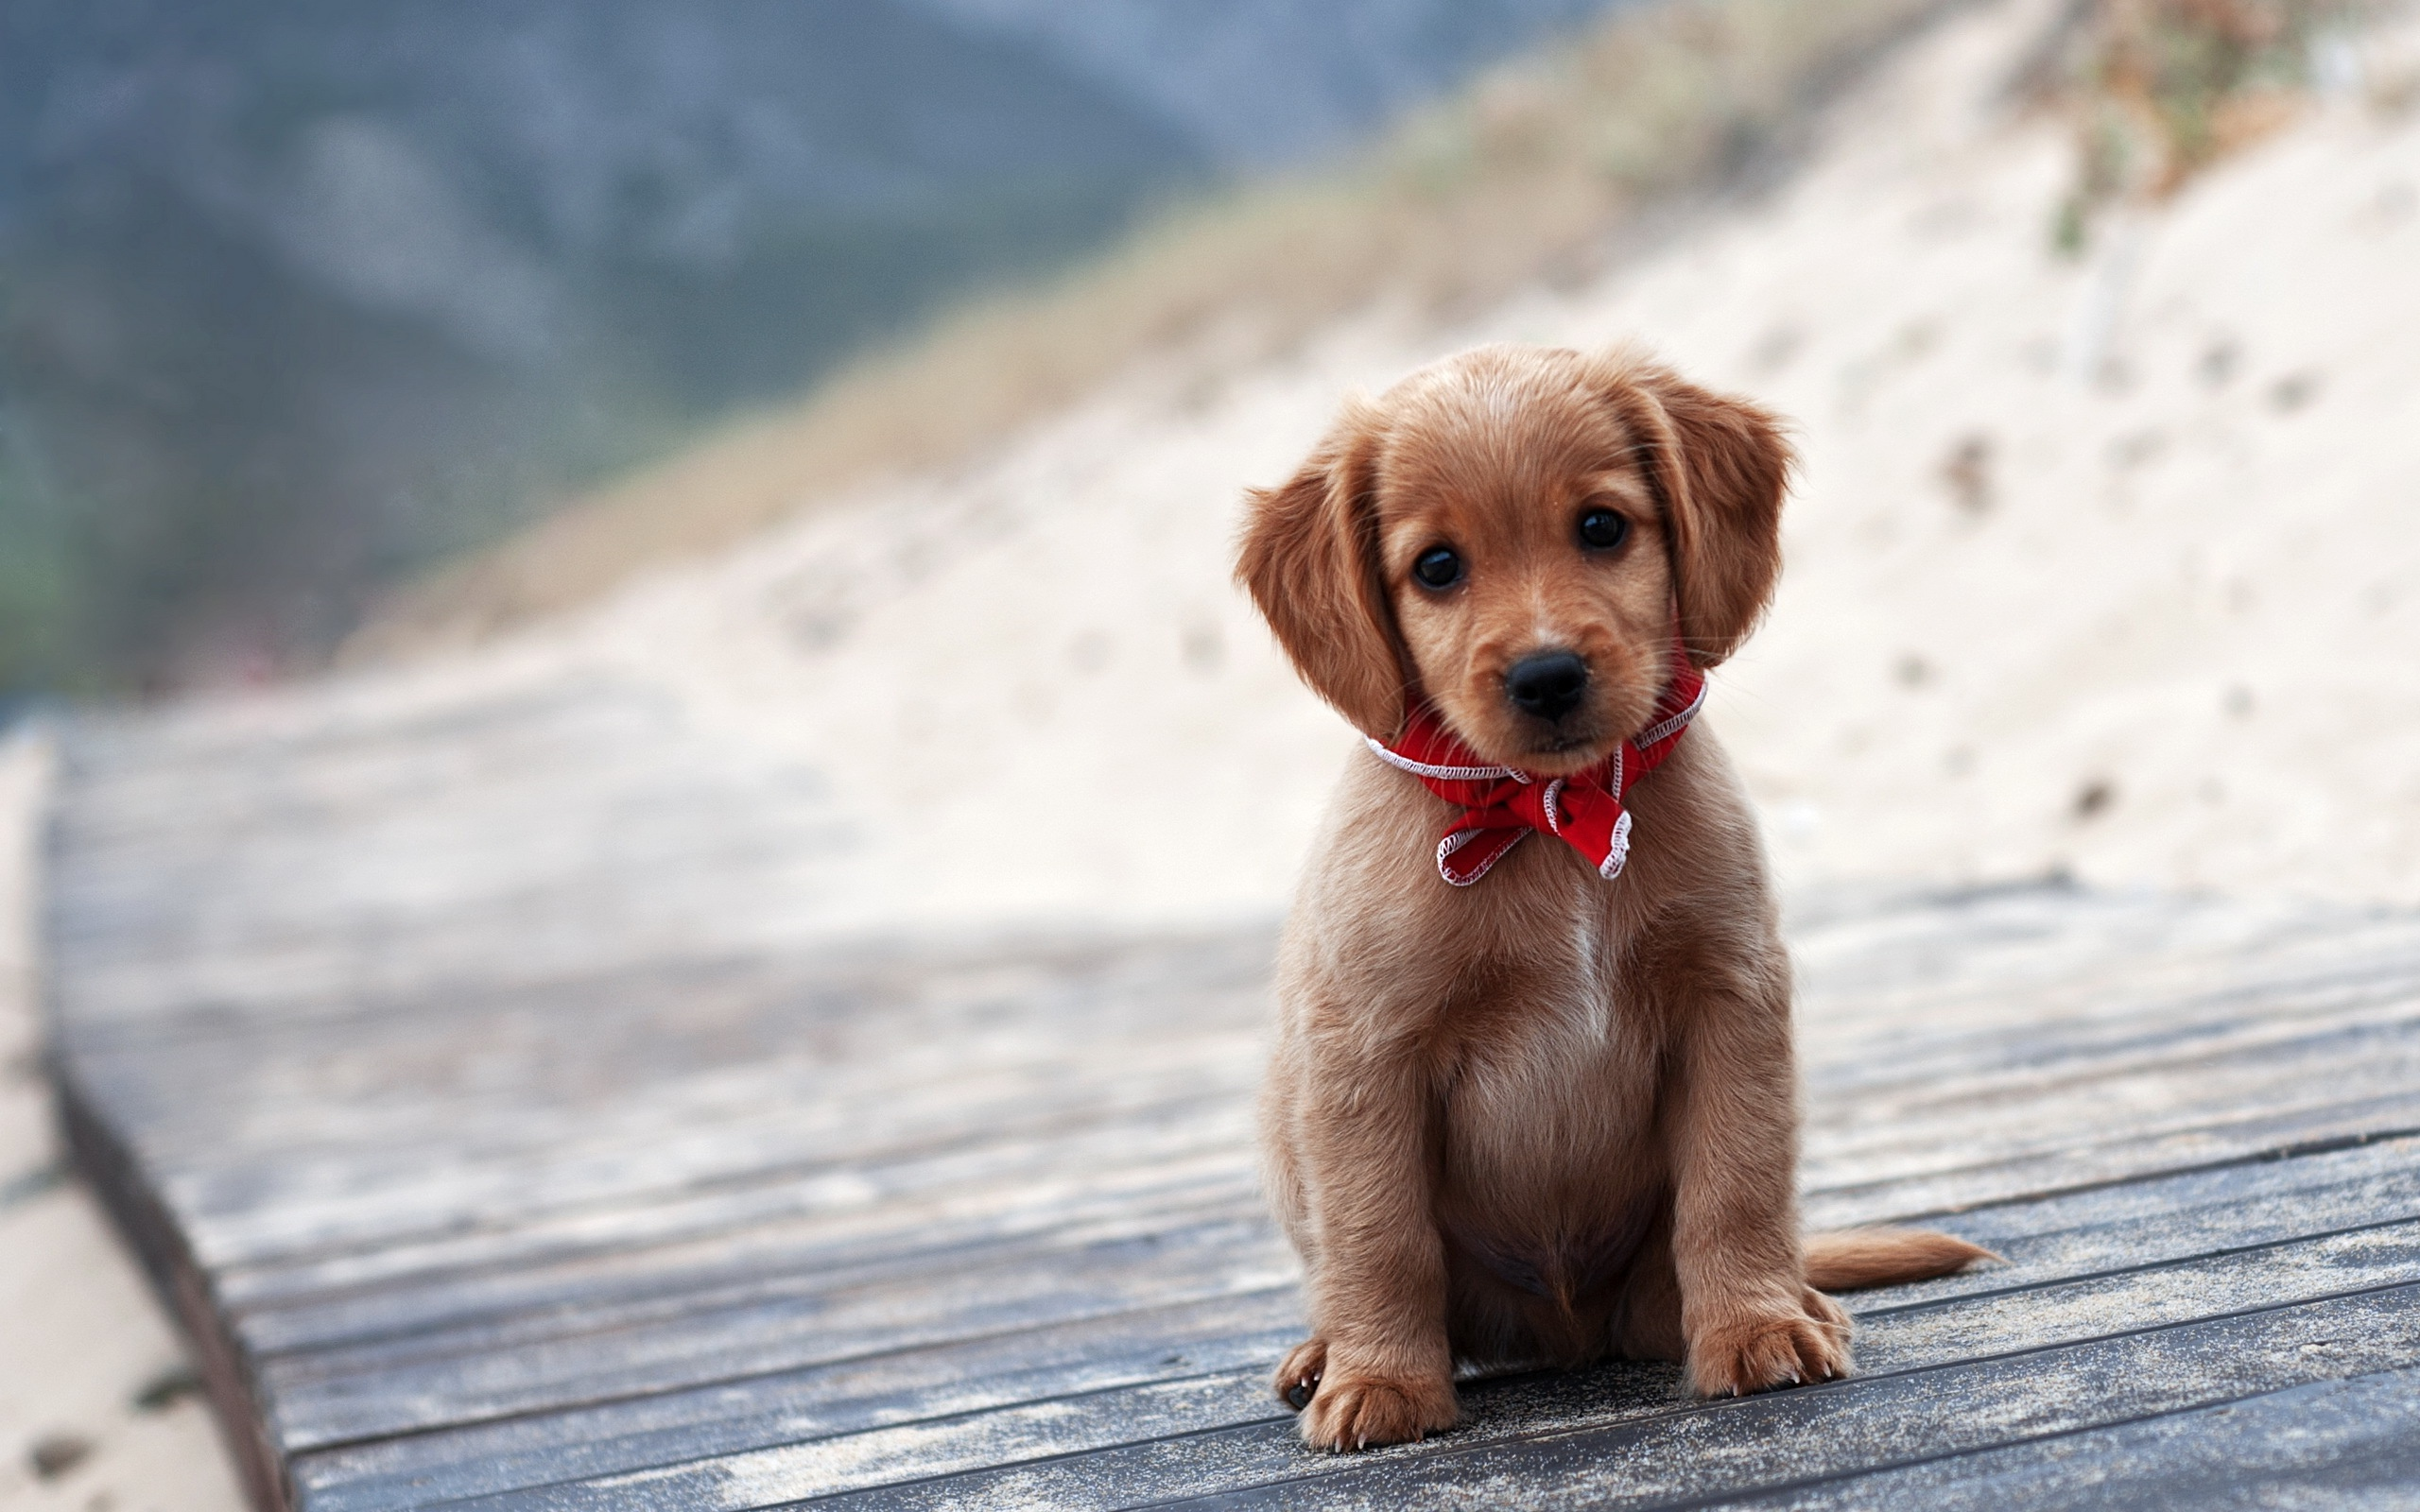 Adorable Puppy Face Wallpaper